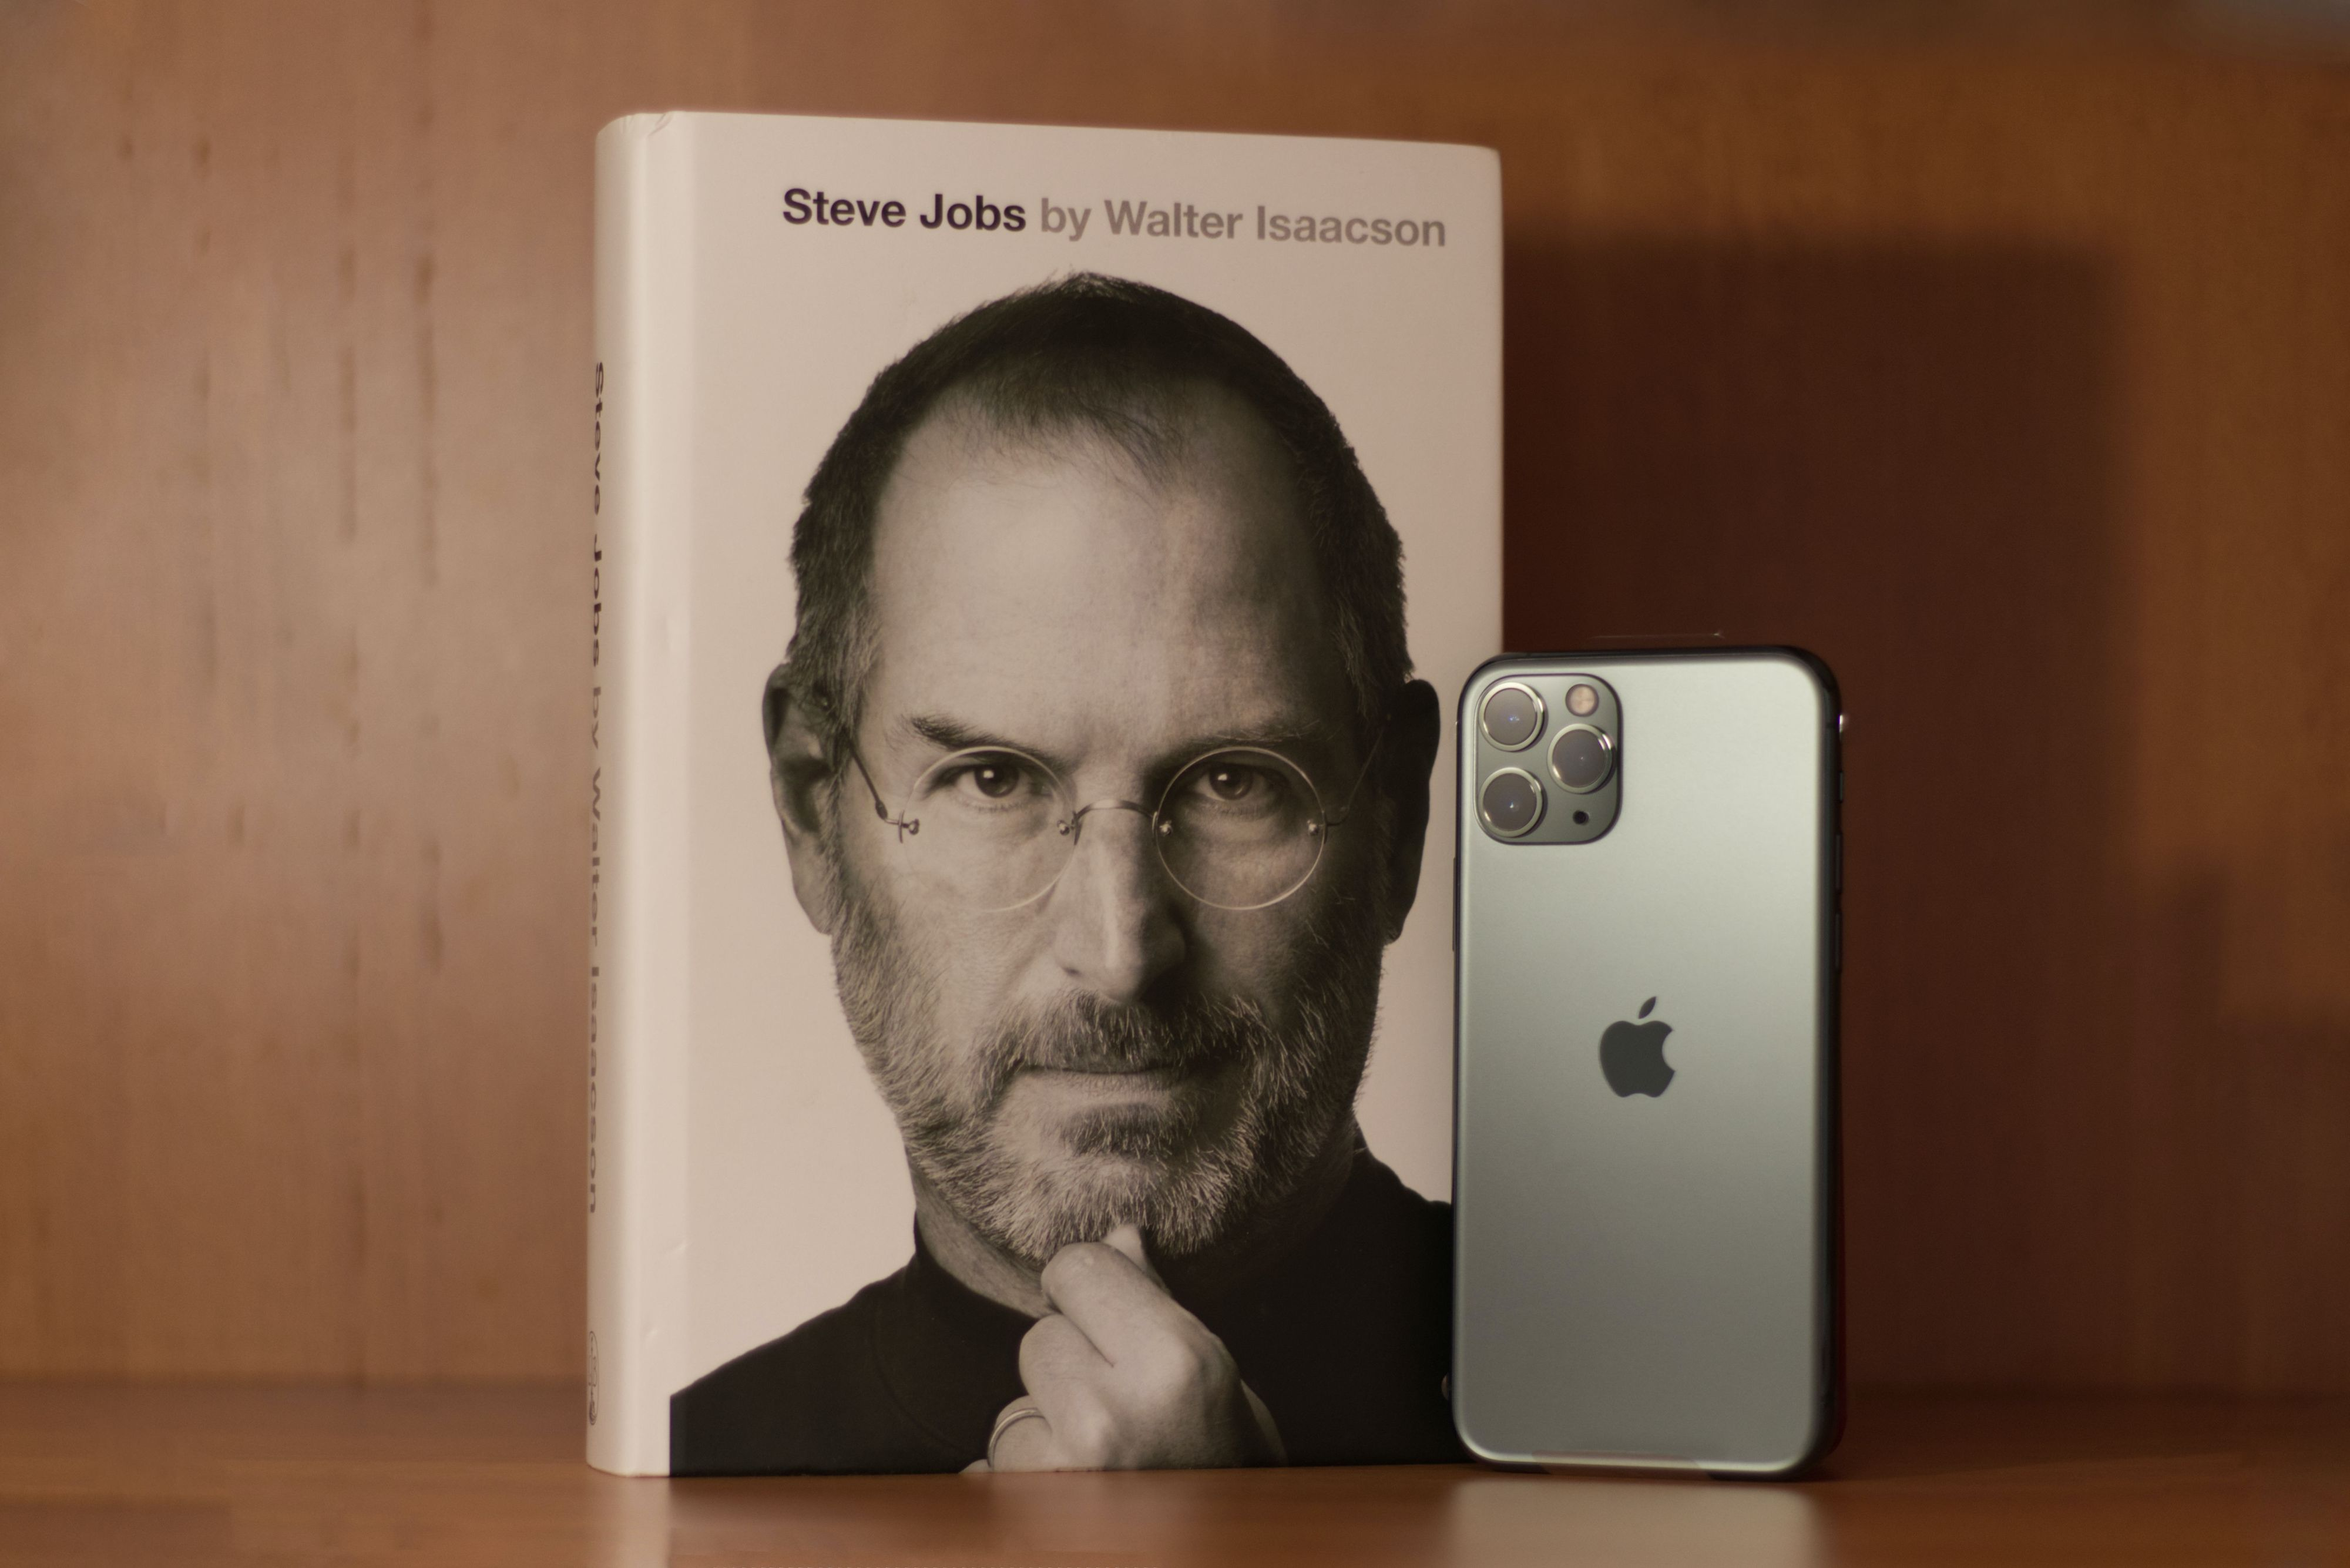 Orchestrating a Product, Lesson I learned from Steve Jobs